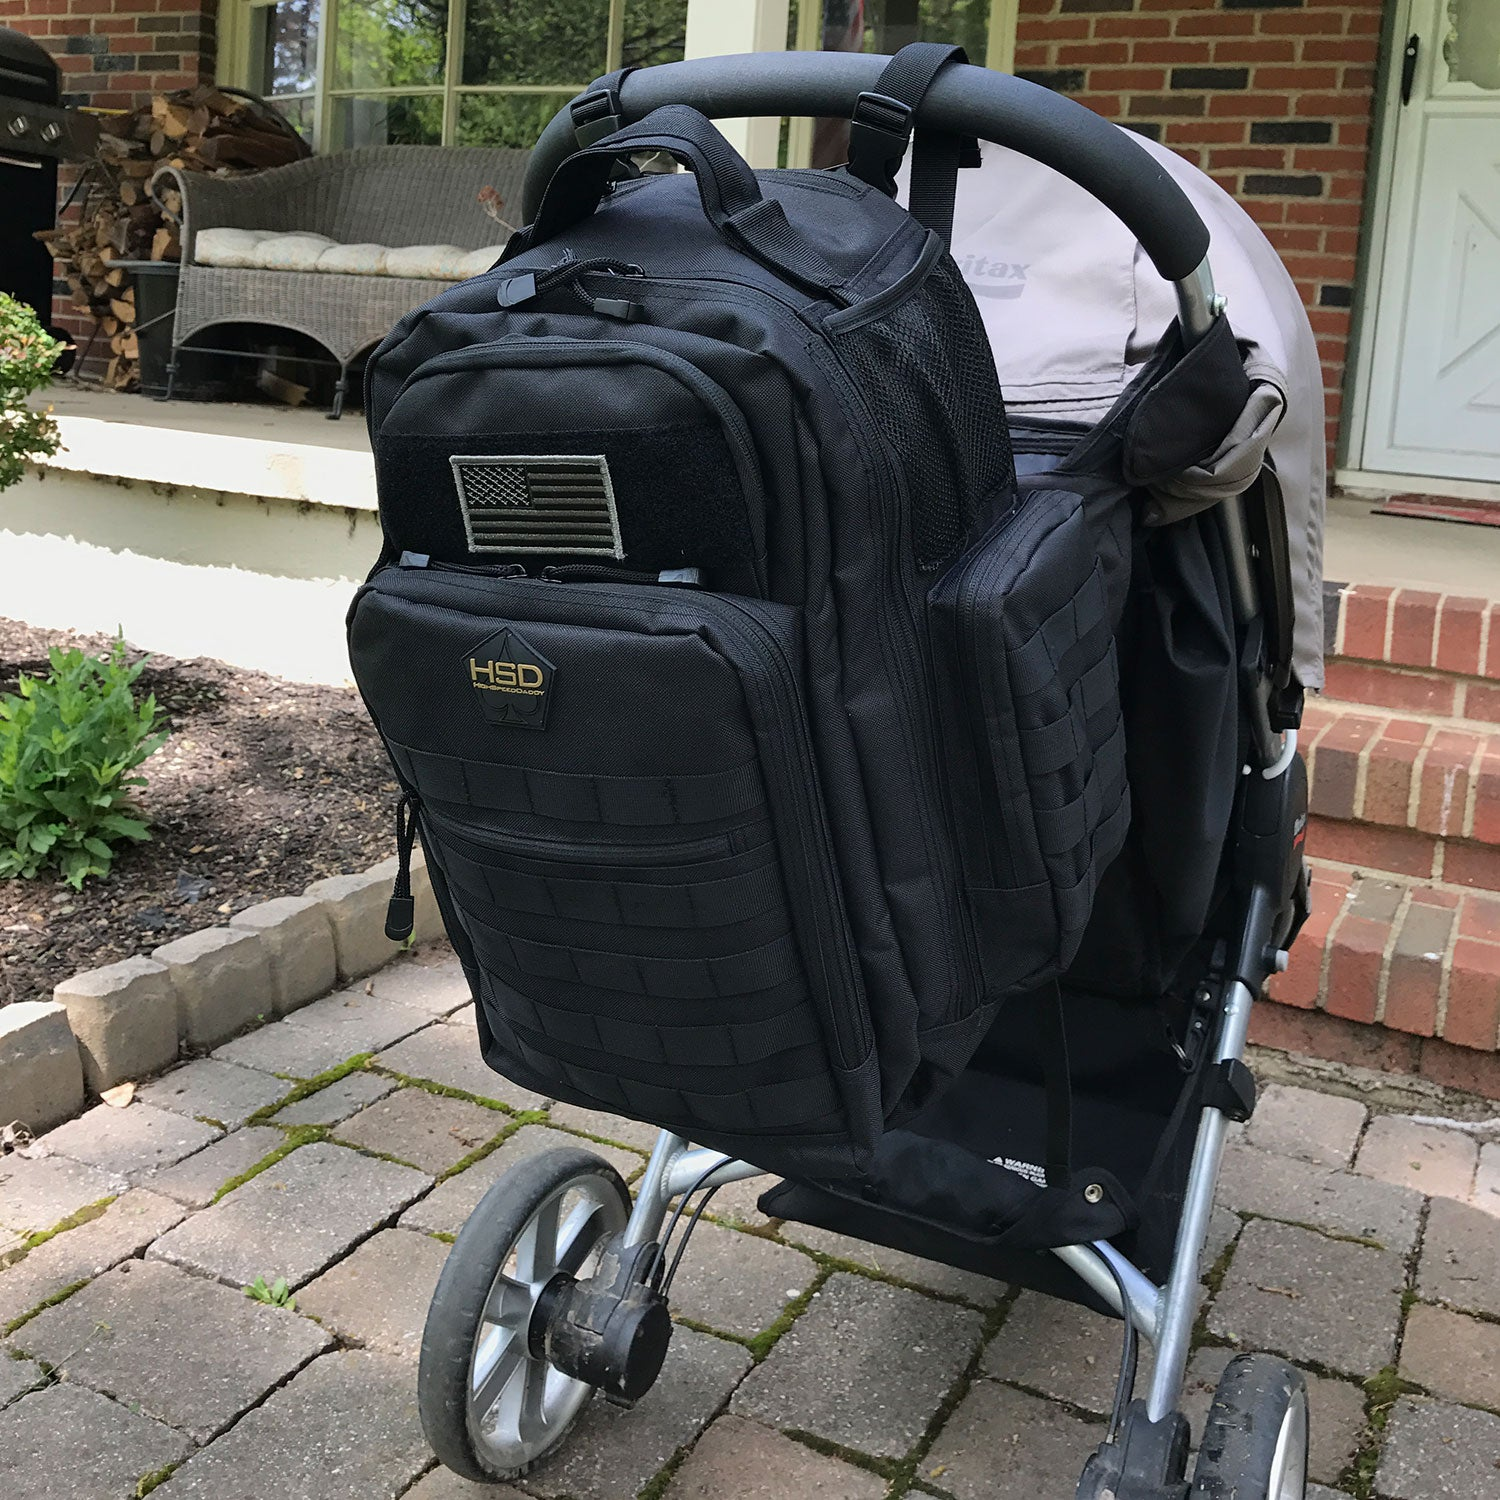 Diaper Bag Backpack on back of a stroller